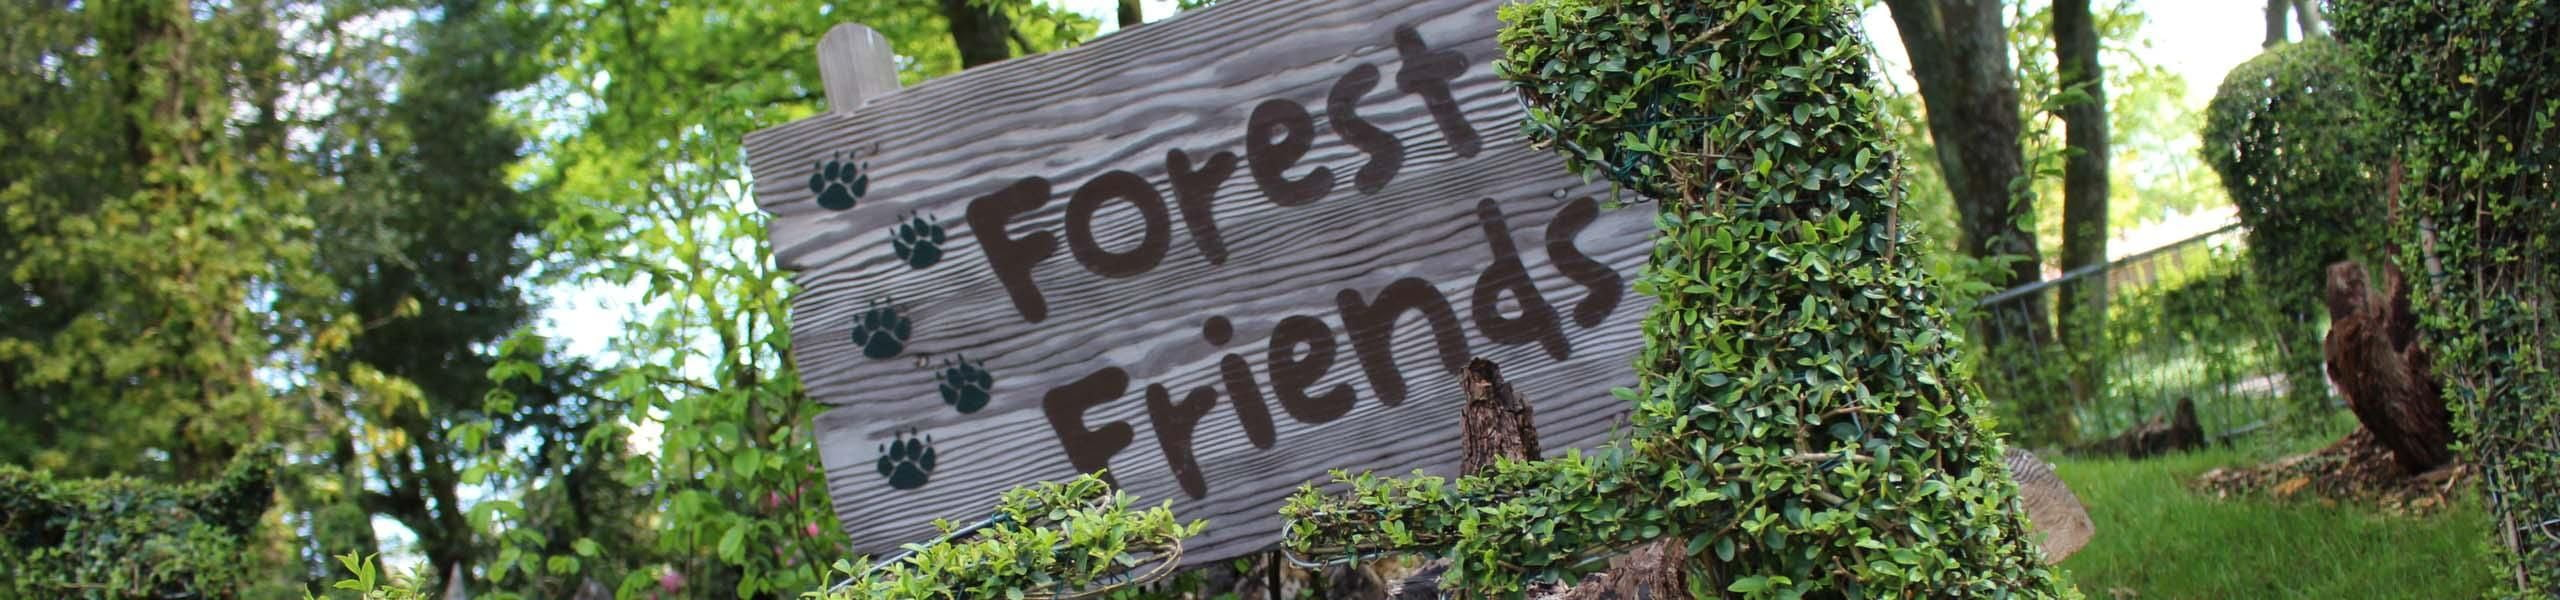 Forest Friend Gardens & Lake | Relax At Paultons Park